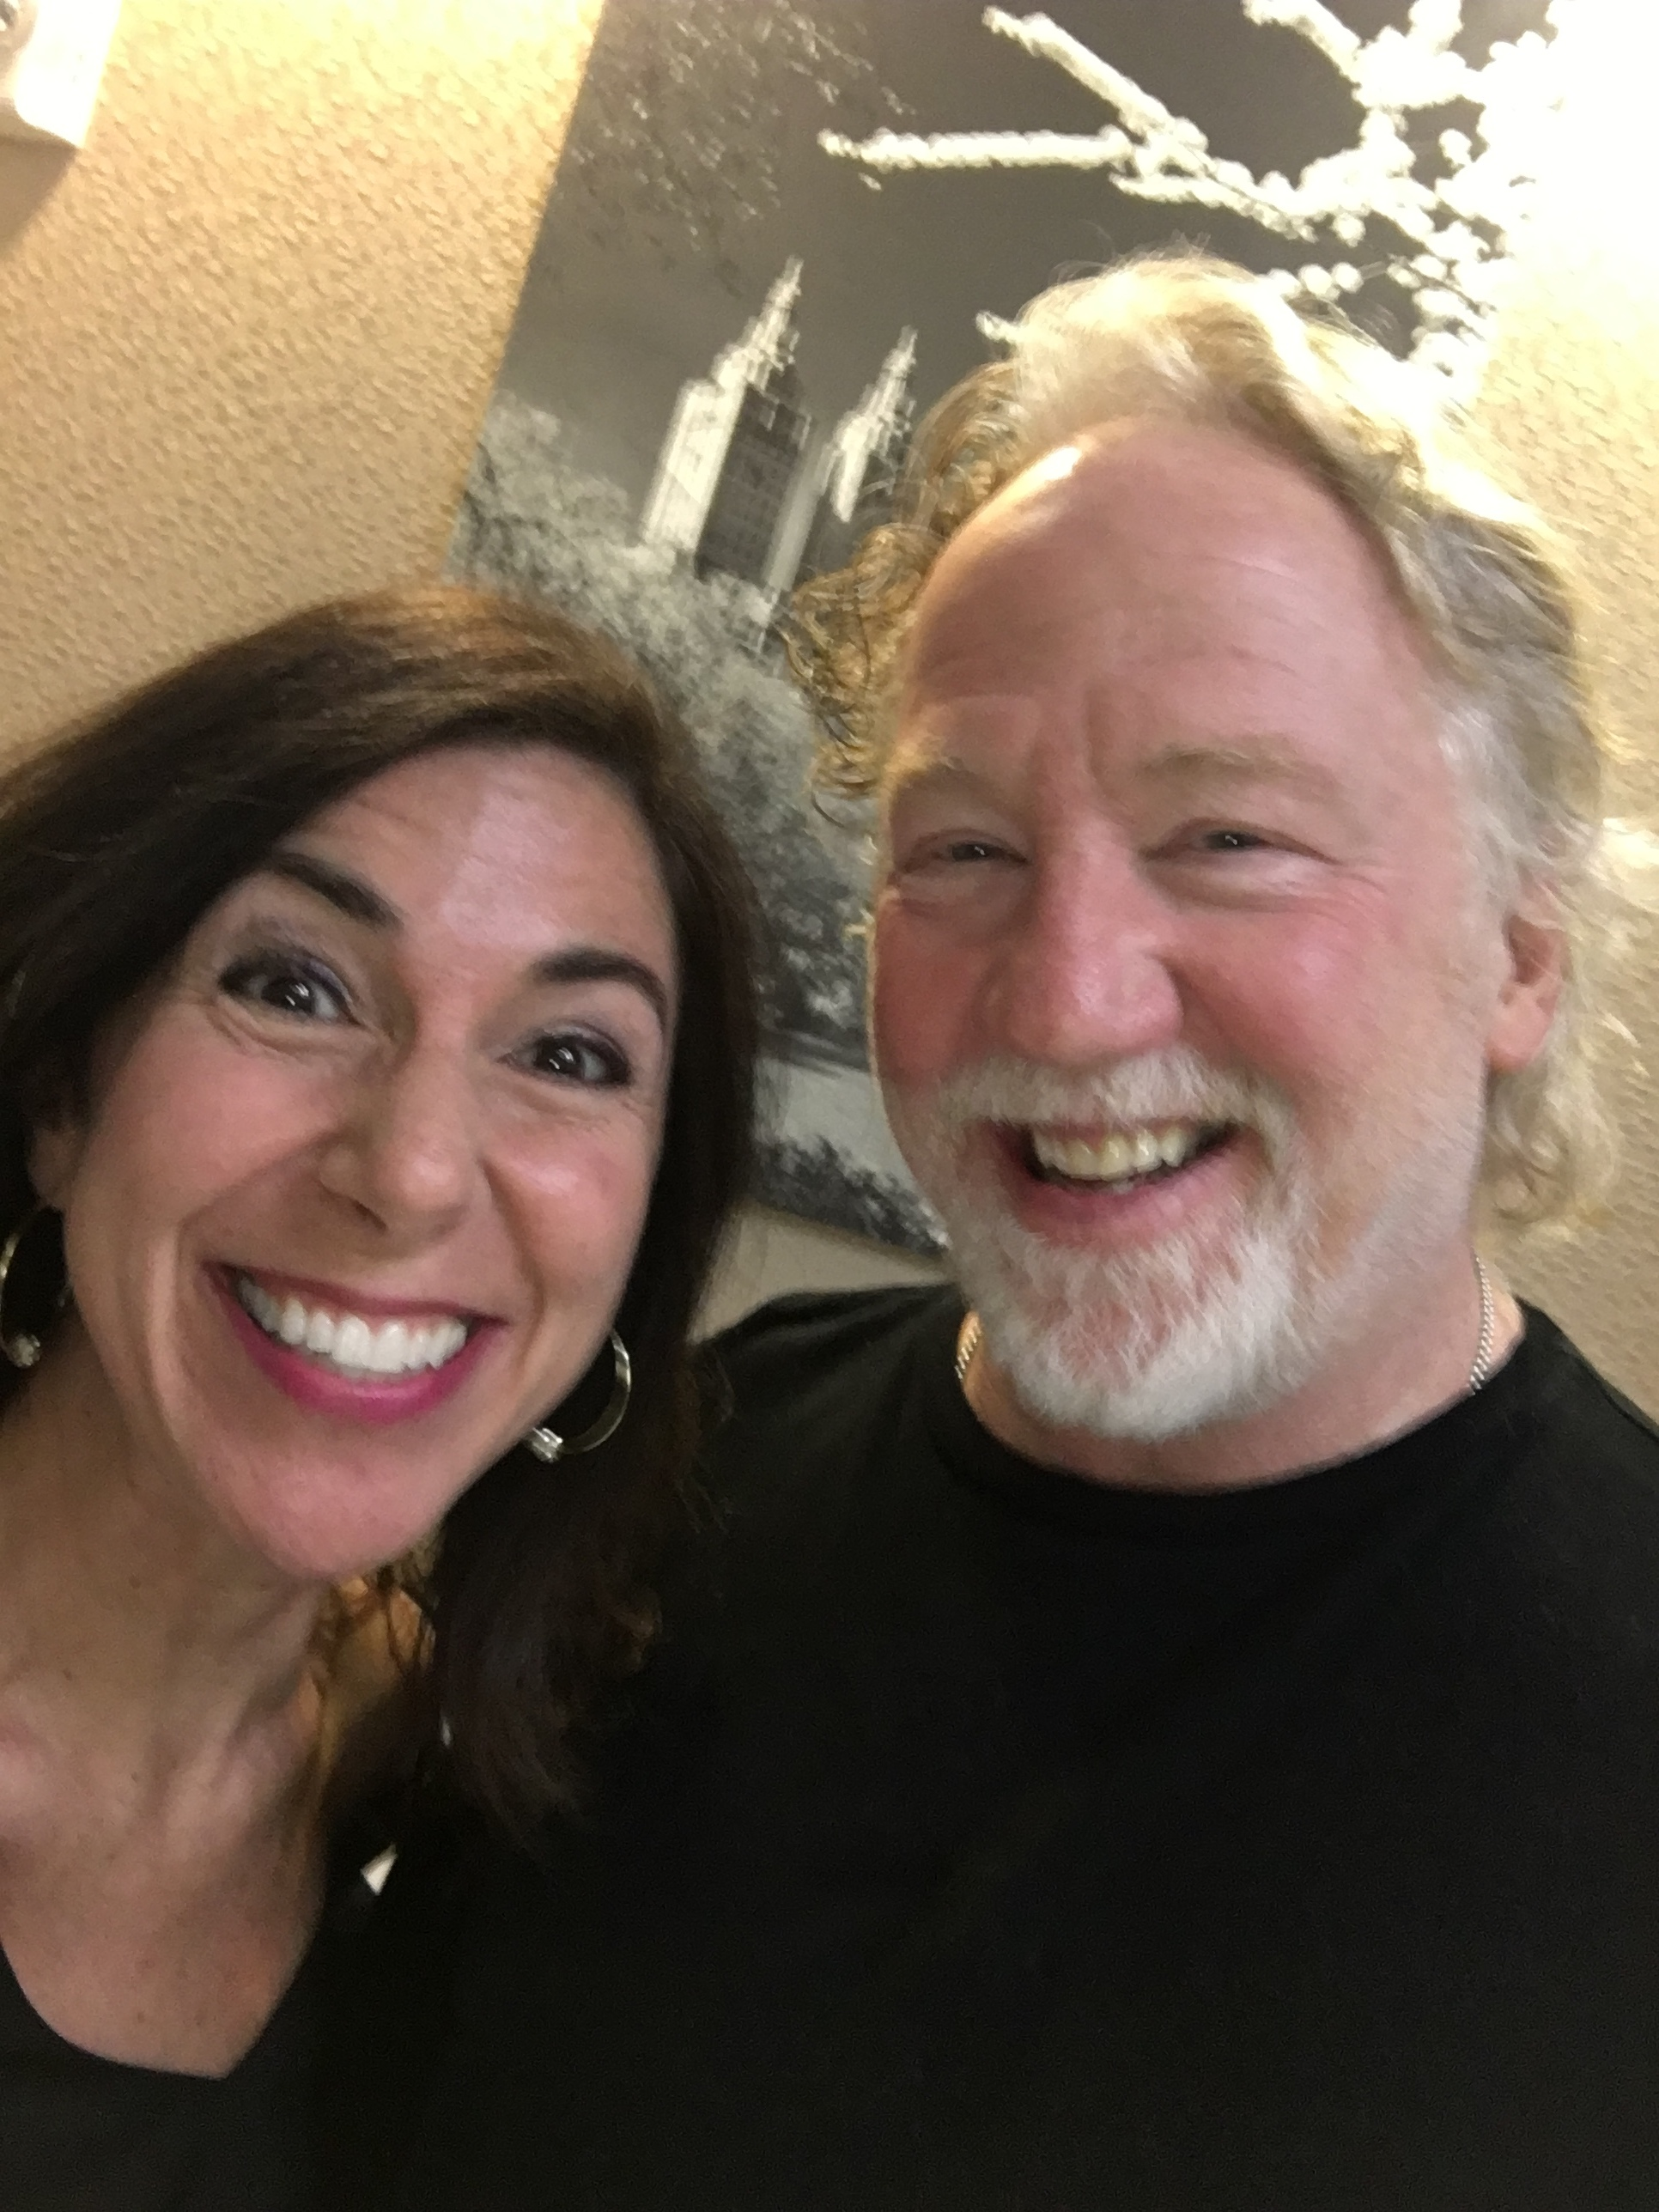 Kara and Tim Busfield FUN.JPG